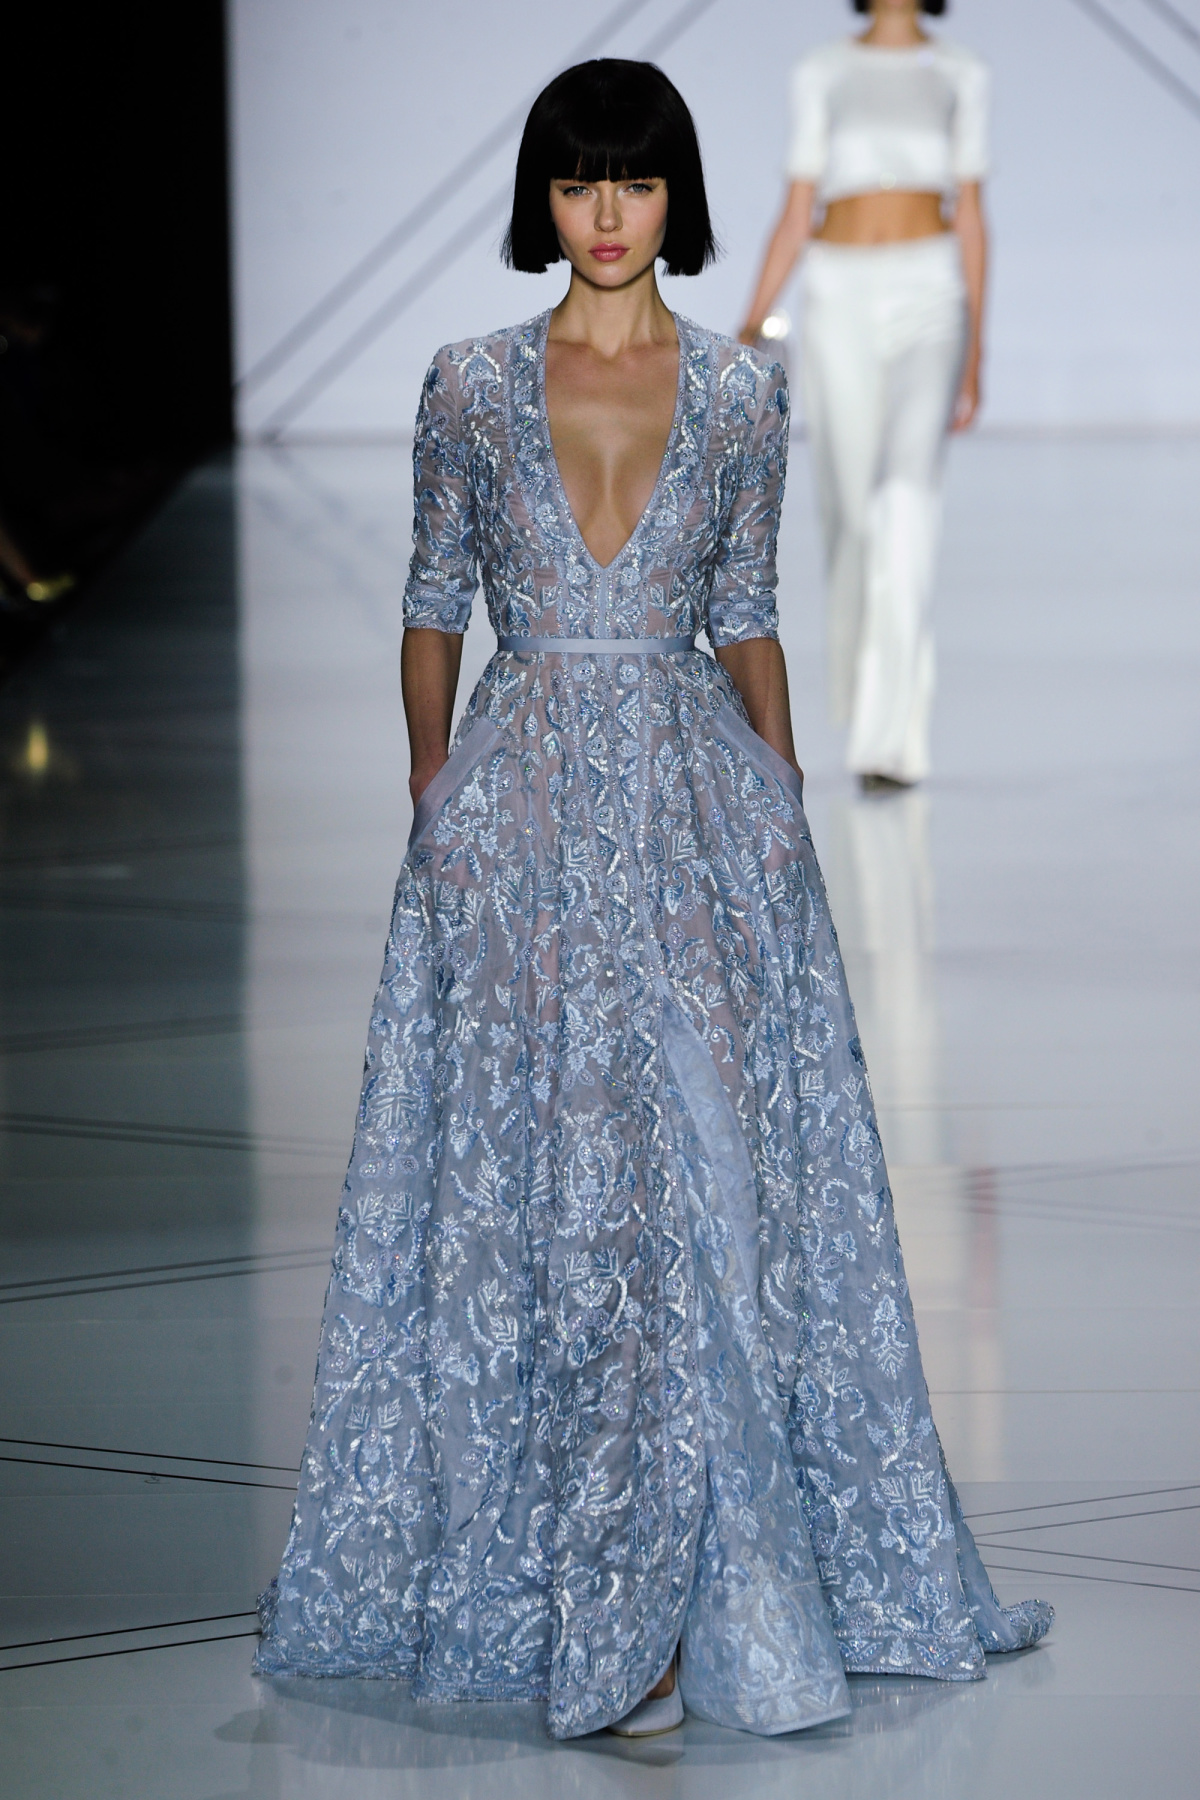 Ralph & Russo Spring 2017, via The Business Of Fashion